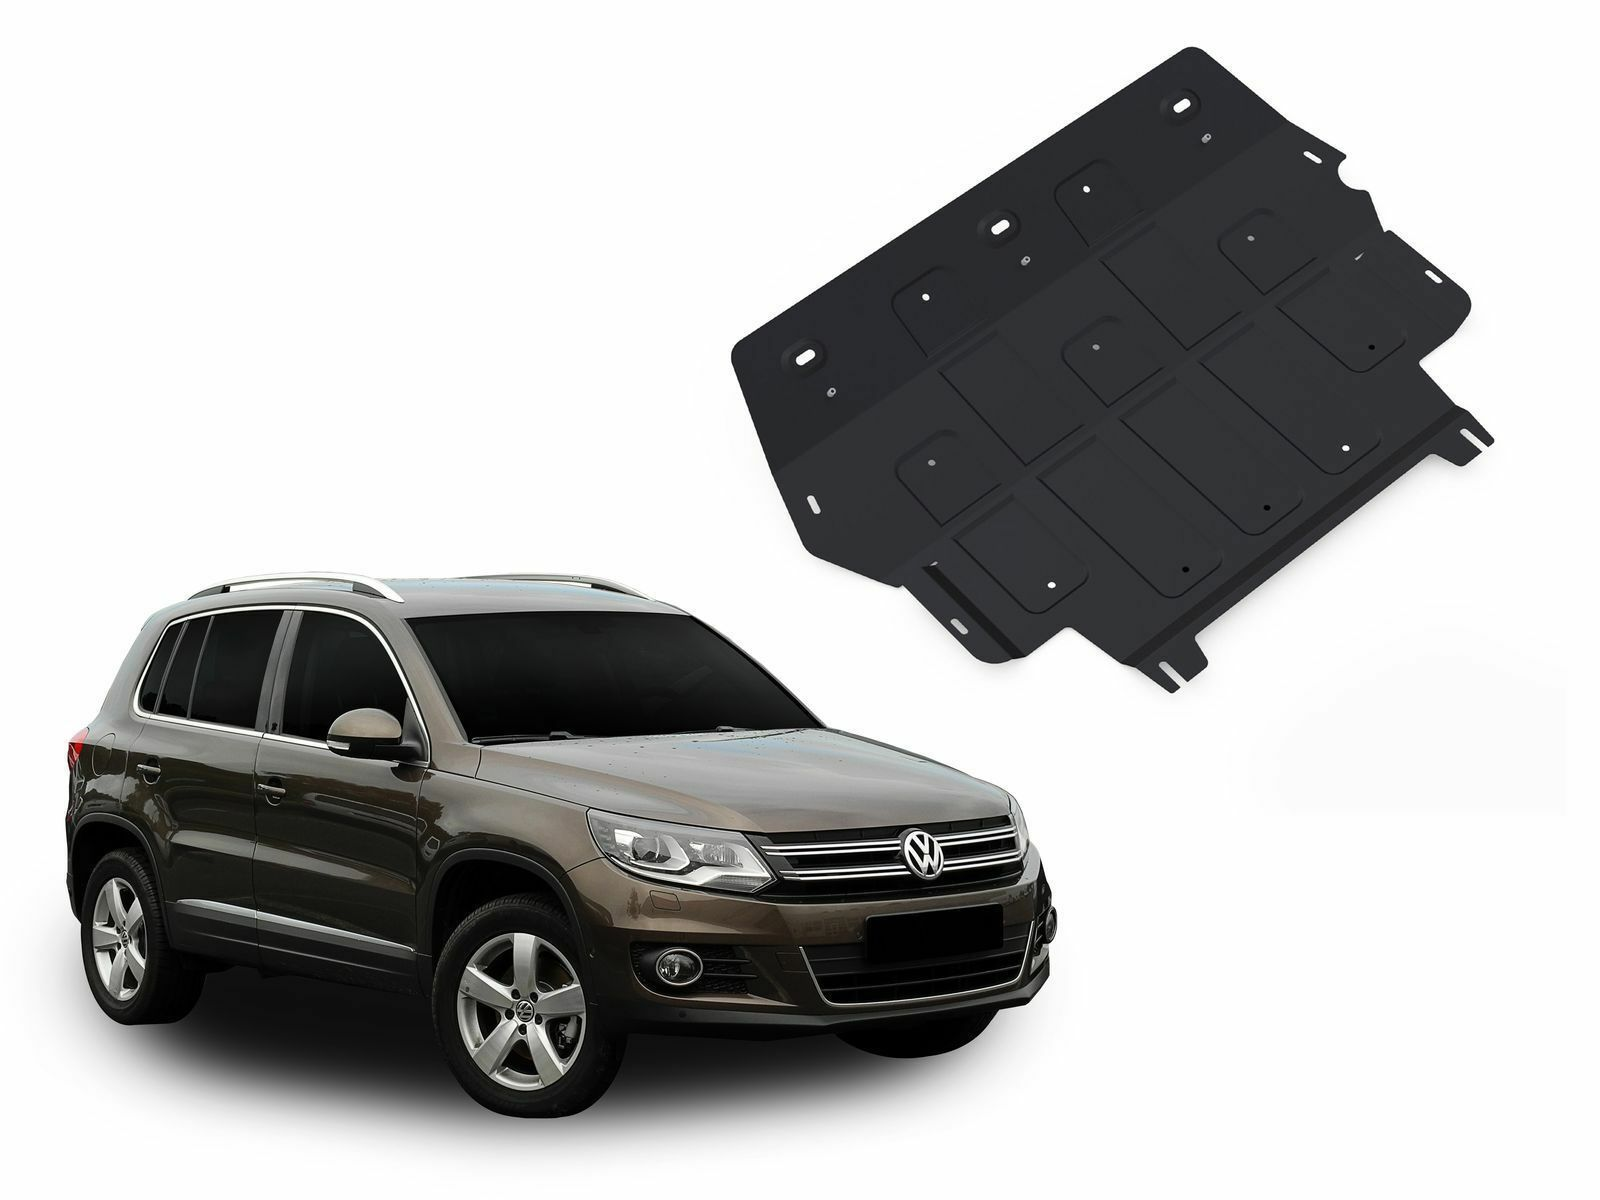 UKB4C Car Dog Guard Safety Open Access into Boot fits Volkswagen VW Tiguan